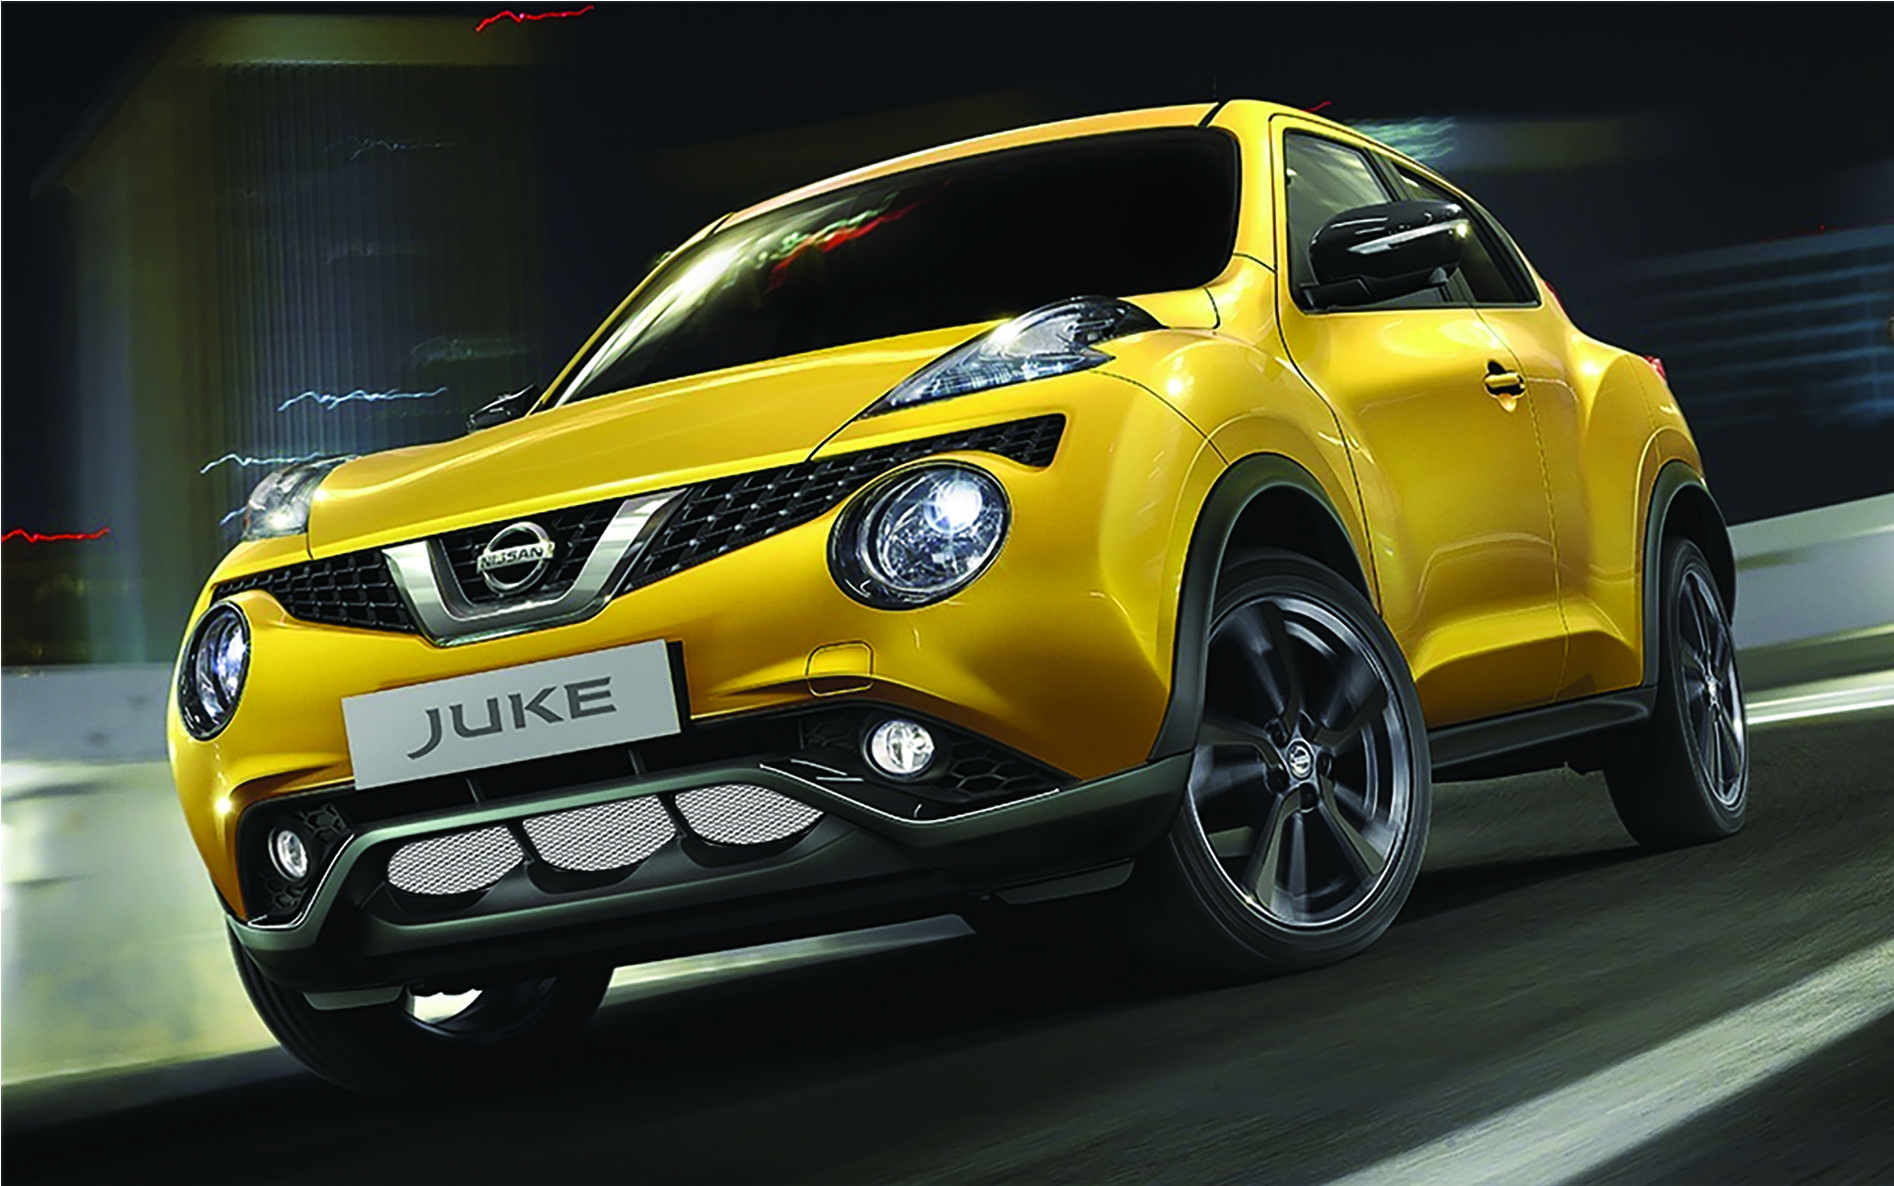 5922fee858066dfd45a1318401374ce0 Take A Look About Nissan Juke Custom with Fabulous Photos Cars Review